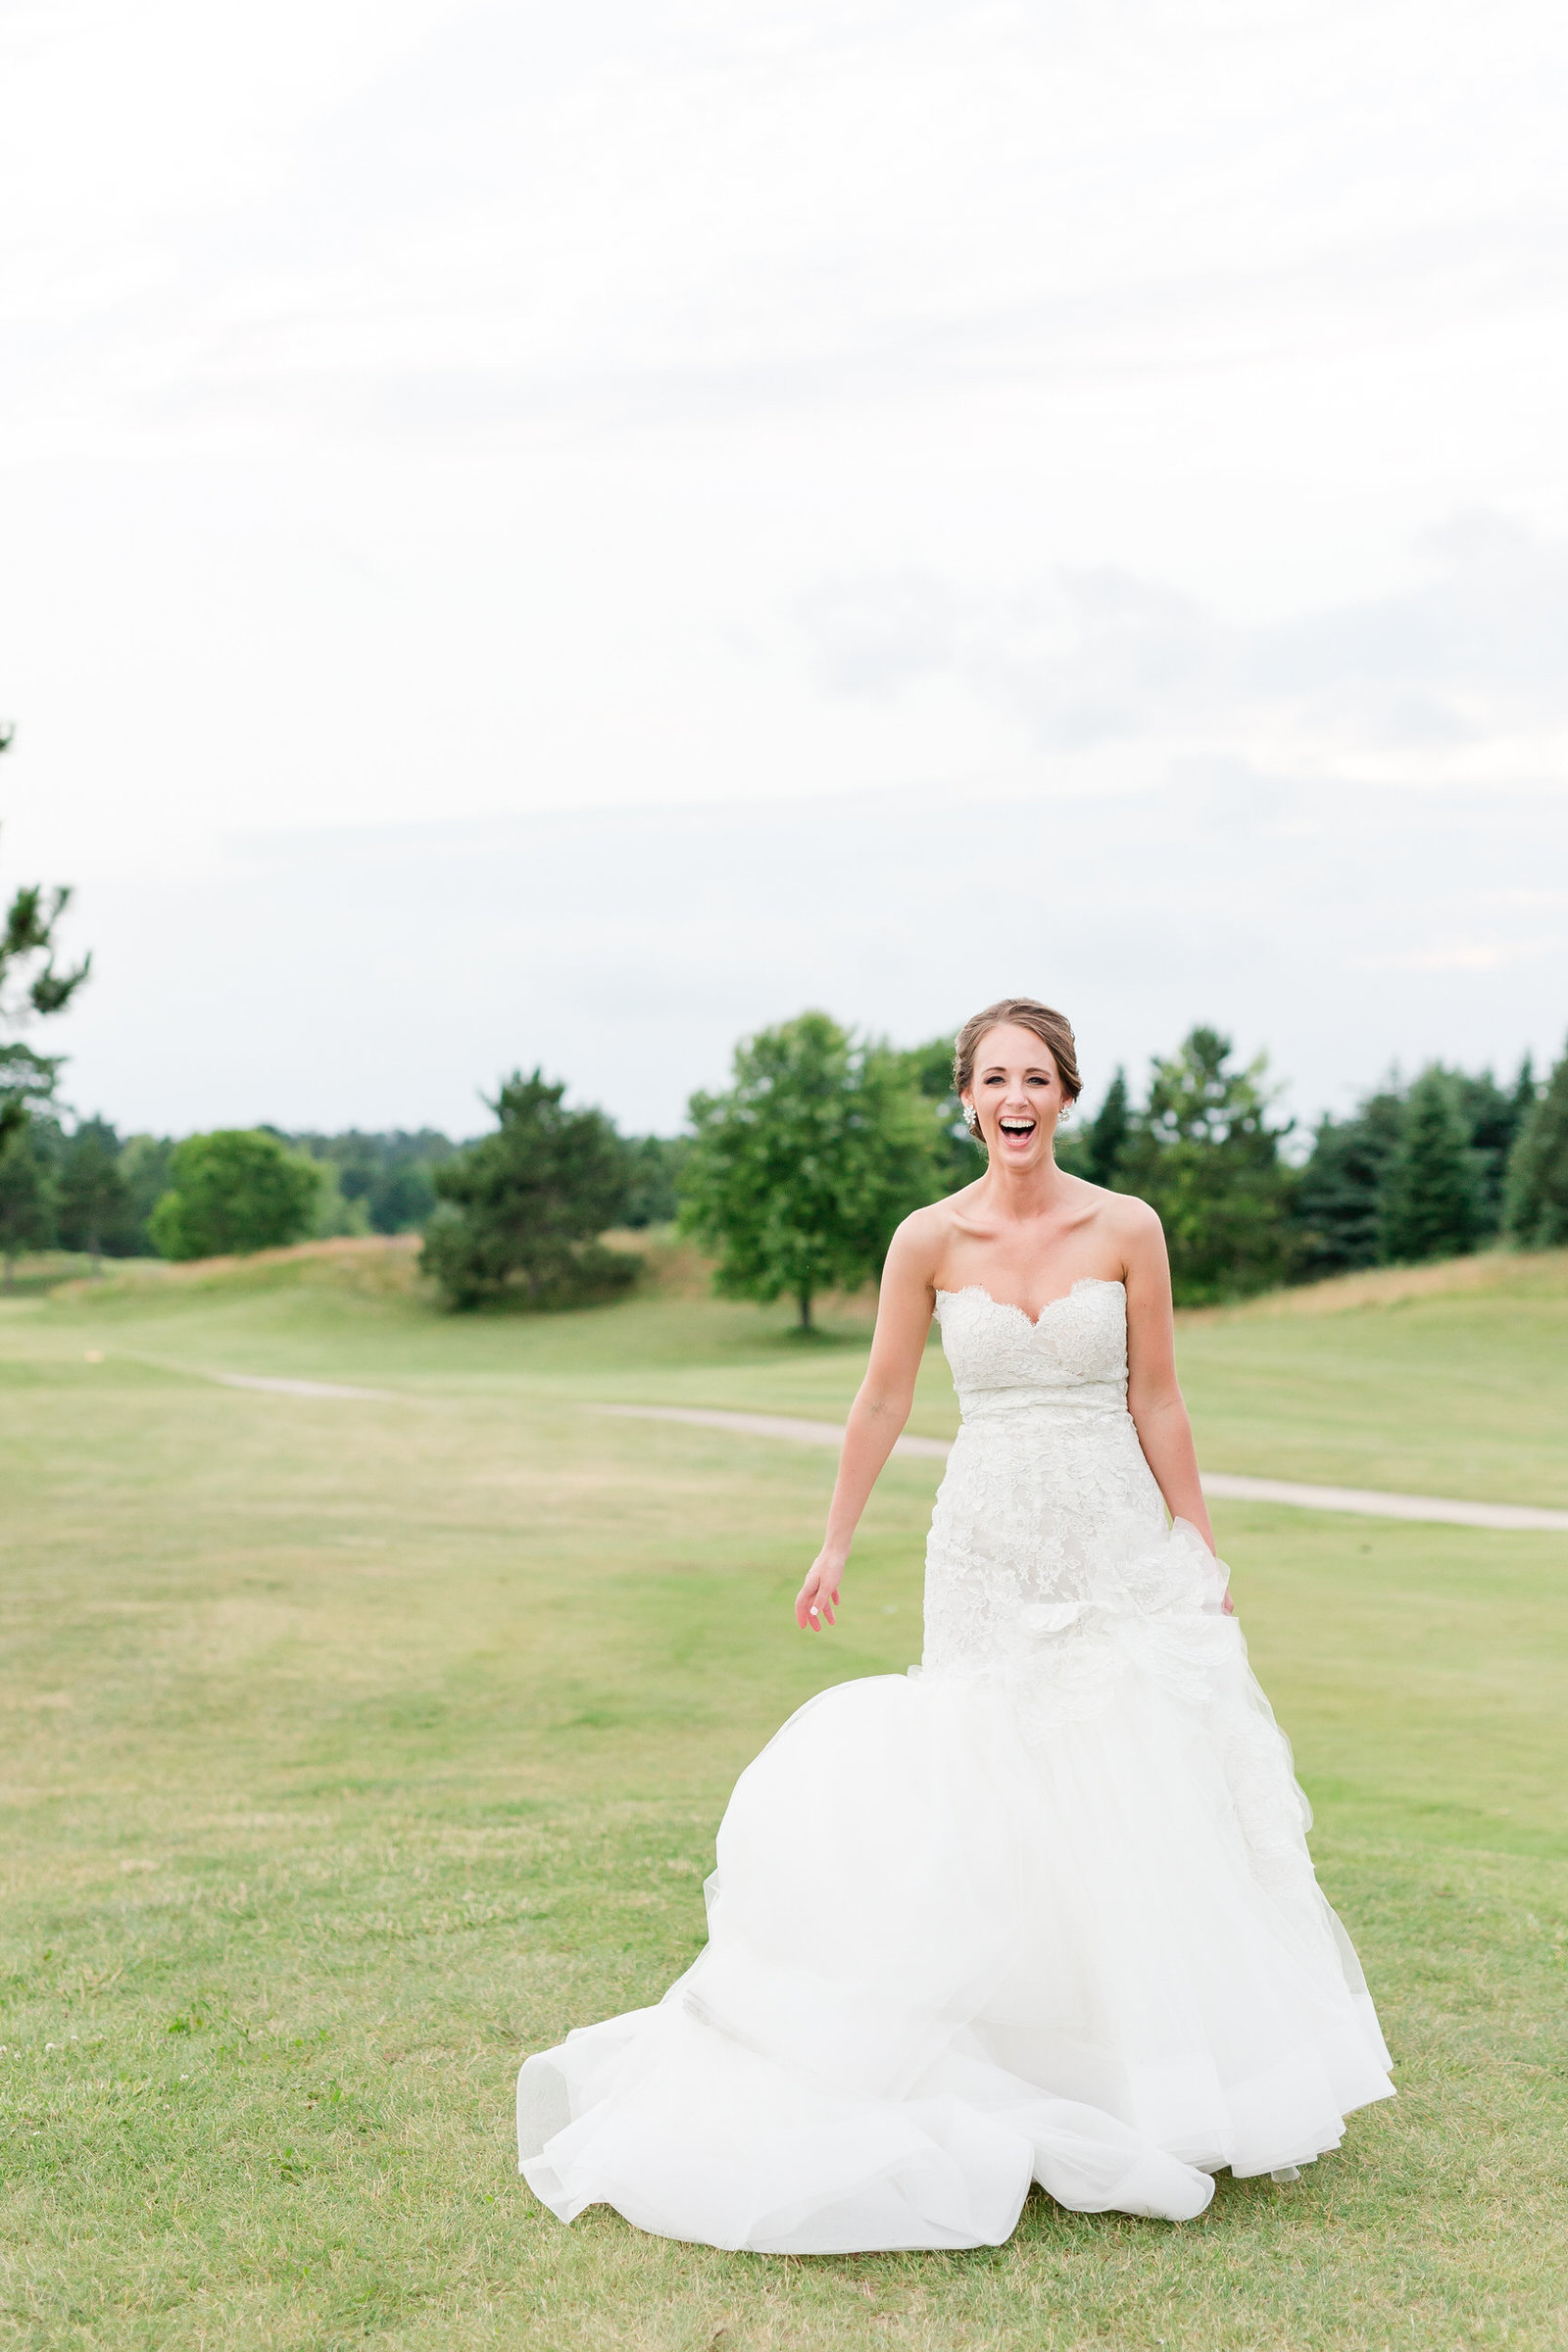 Maison Meredith Photography Wisconsin Wedding Photographer 030